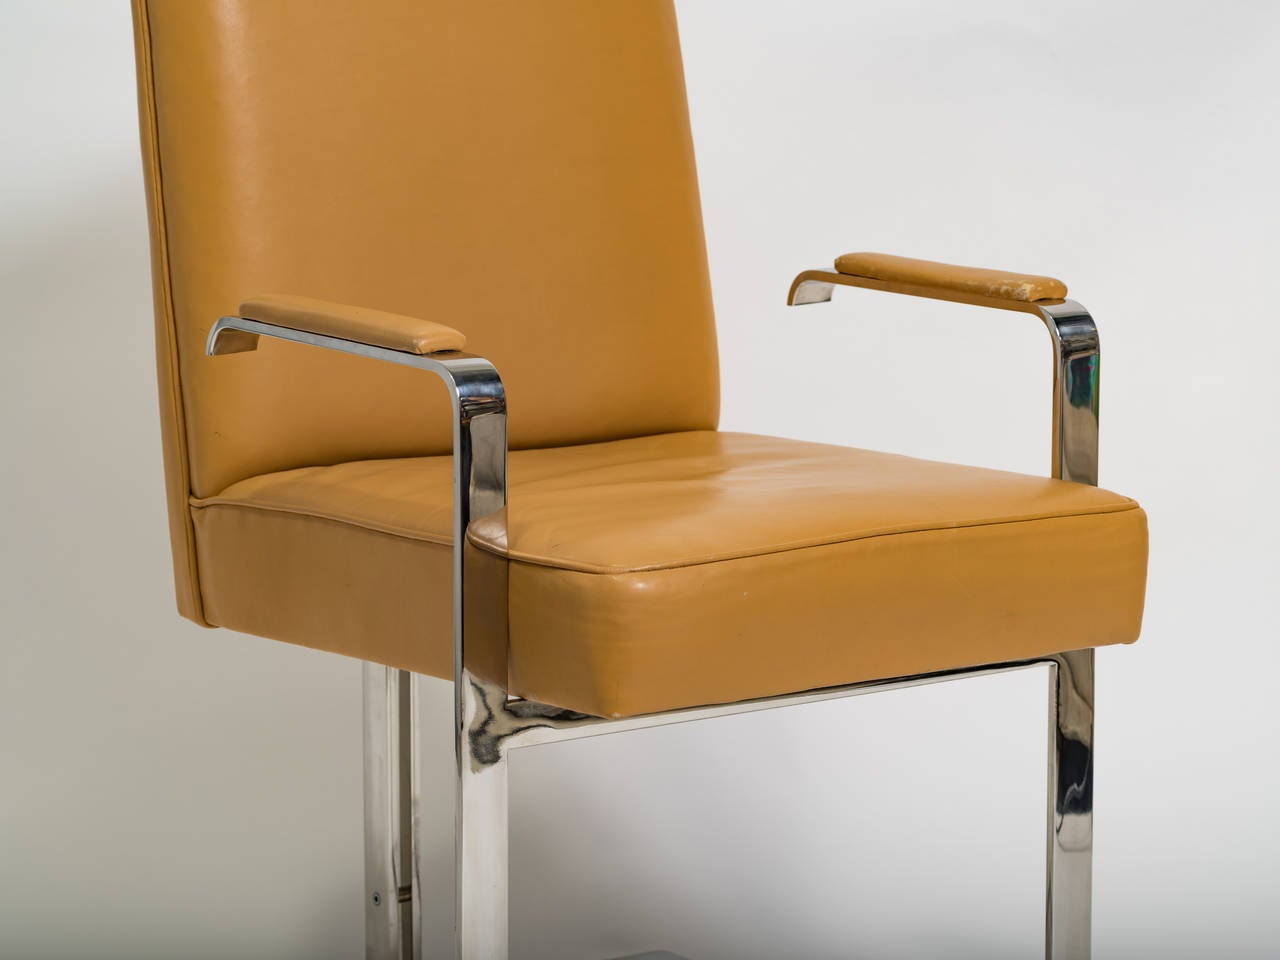 Chrome and leather chair labelled Kagan.